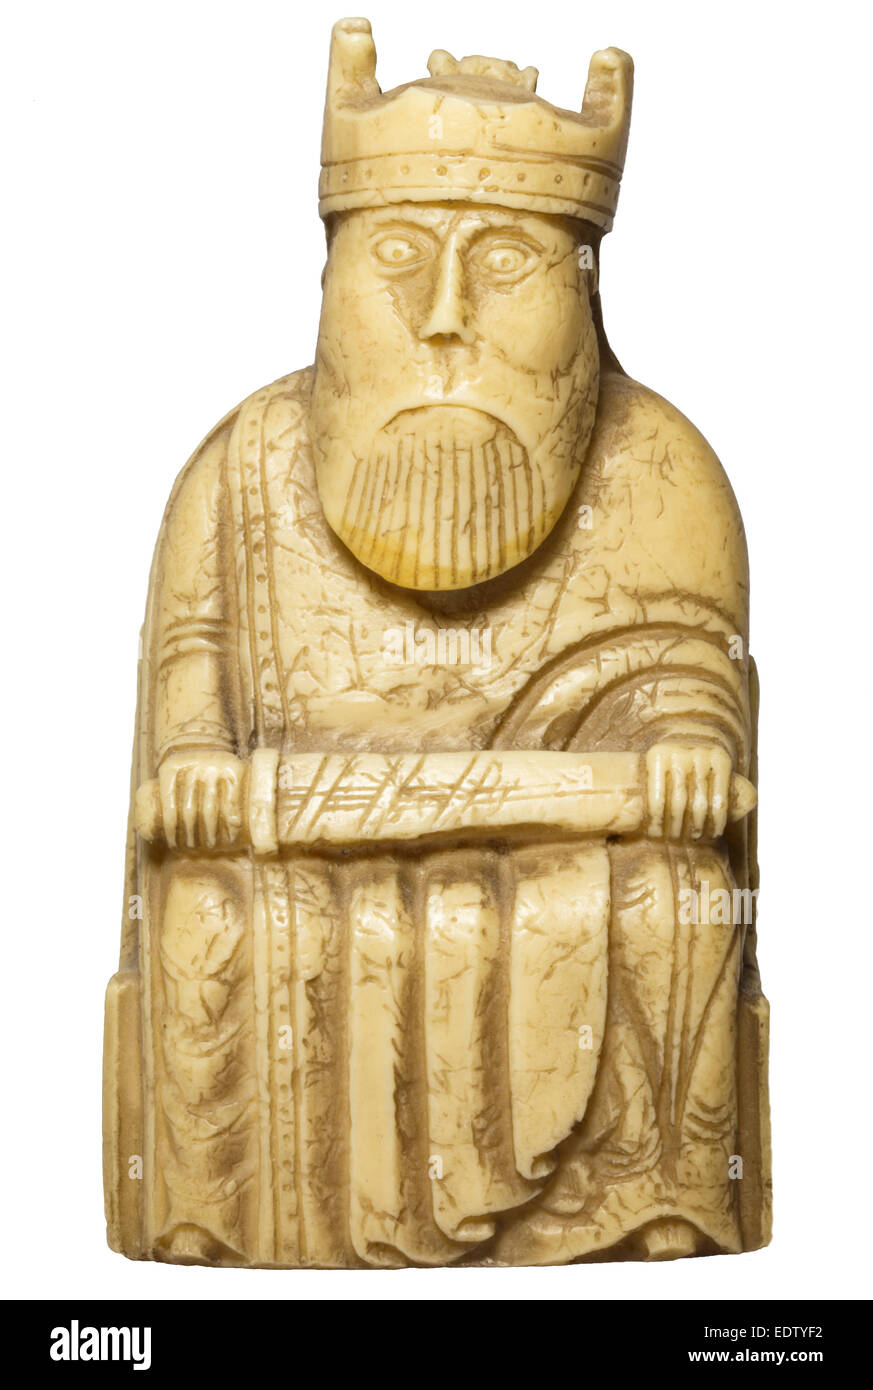 Cut out of 12th century Lewis chessmen piece - king holding sword - Stock Image